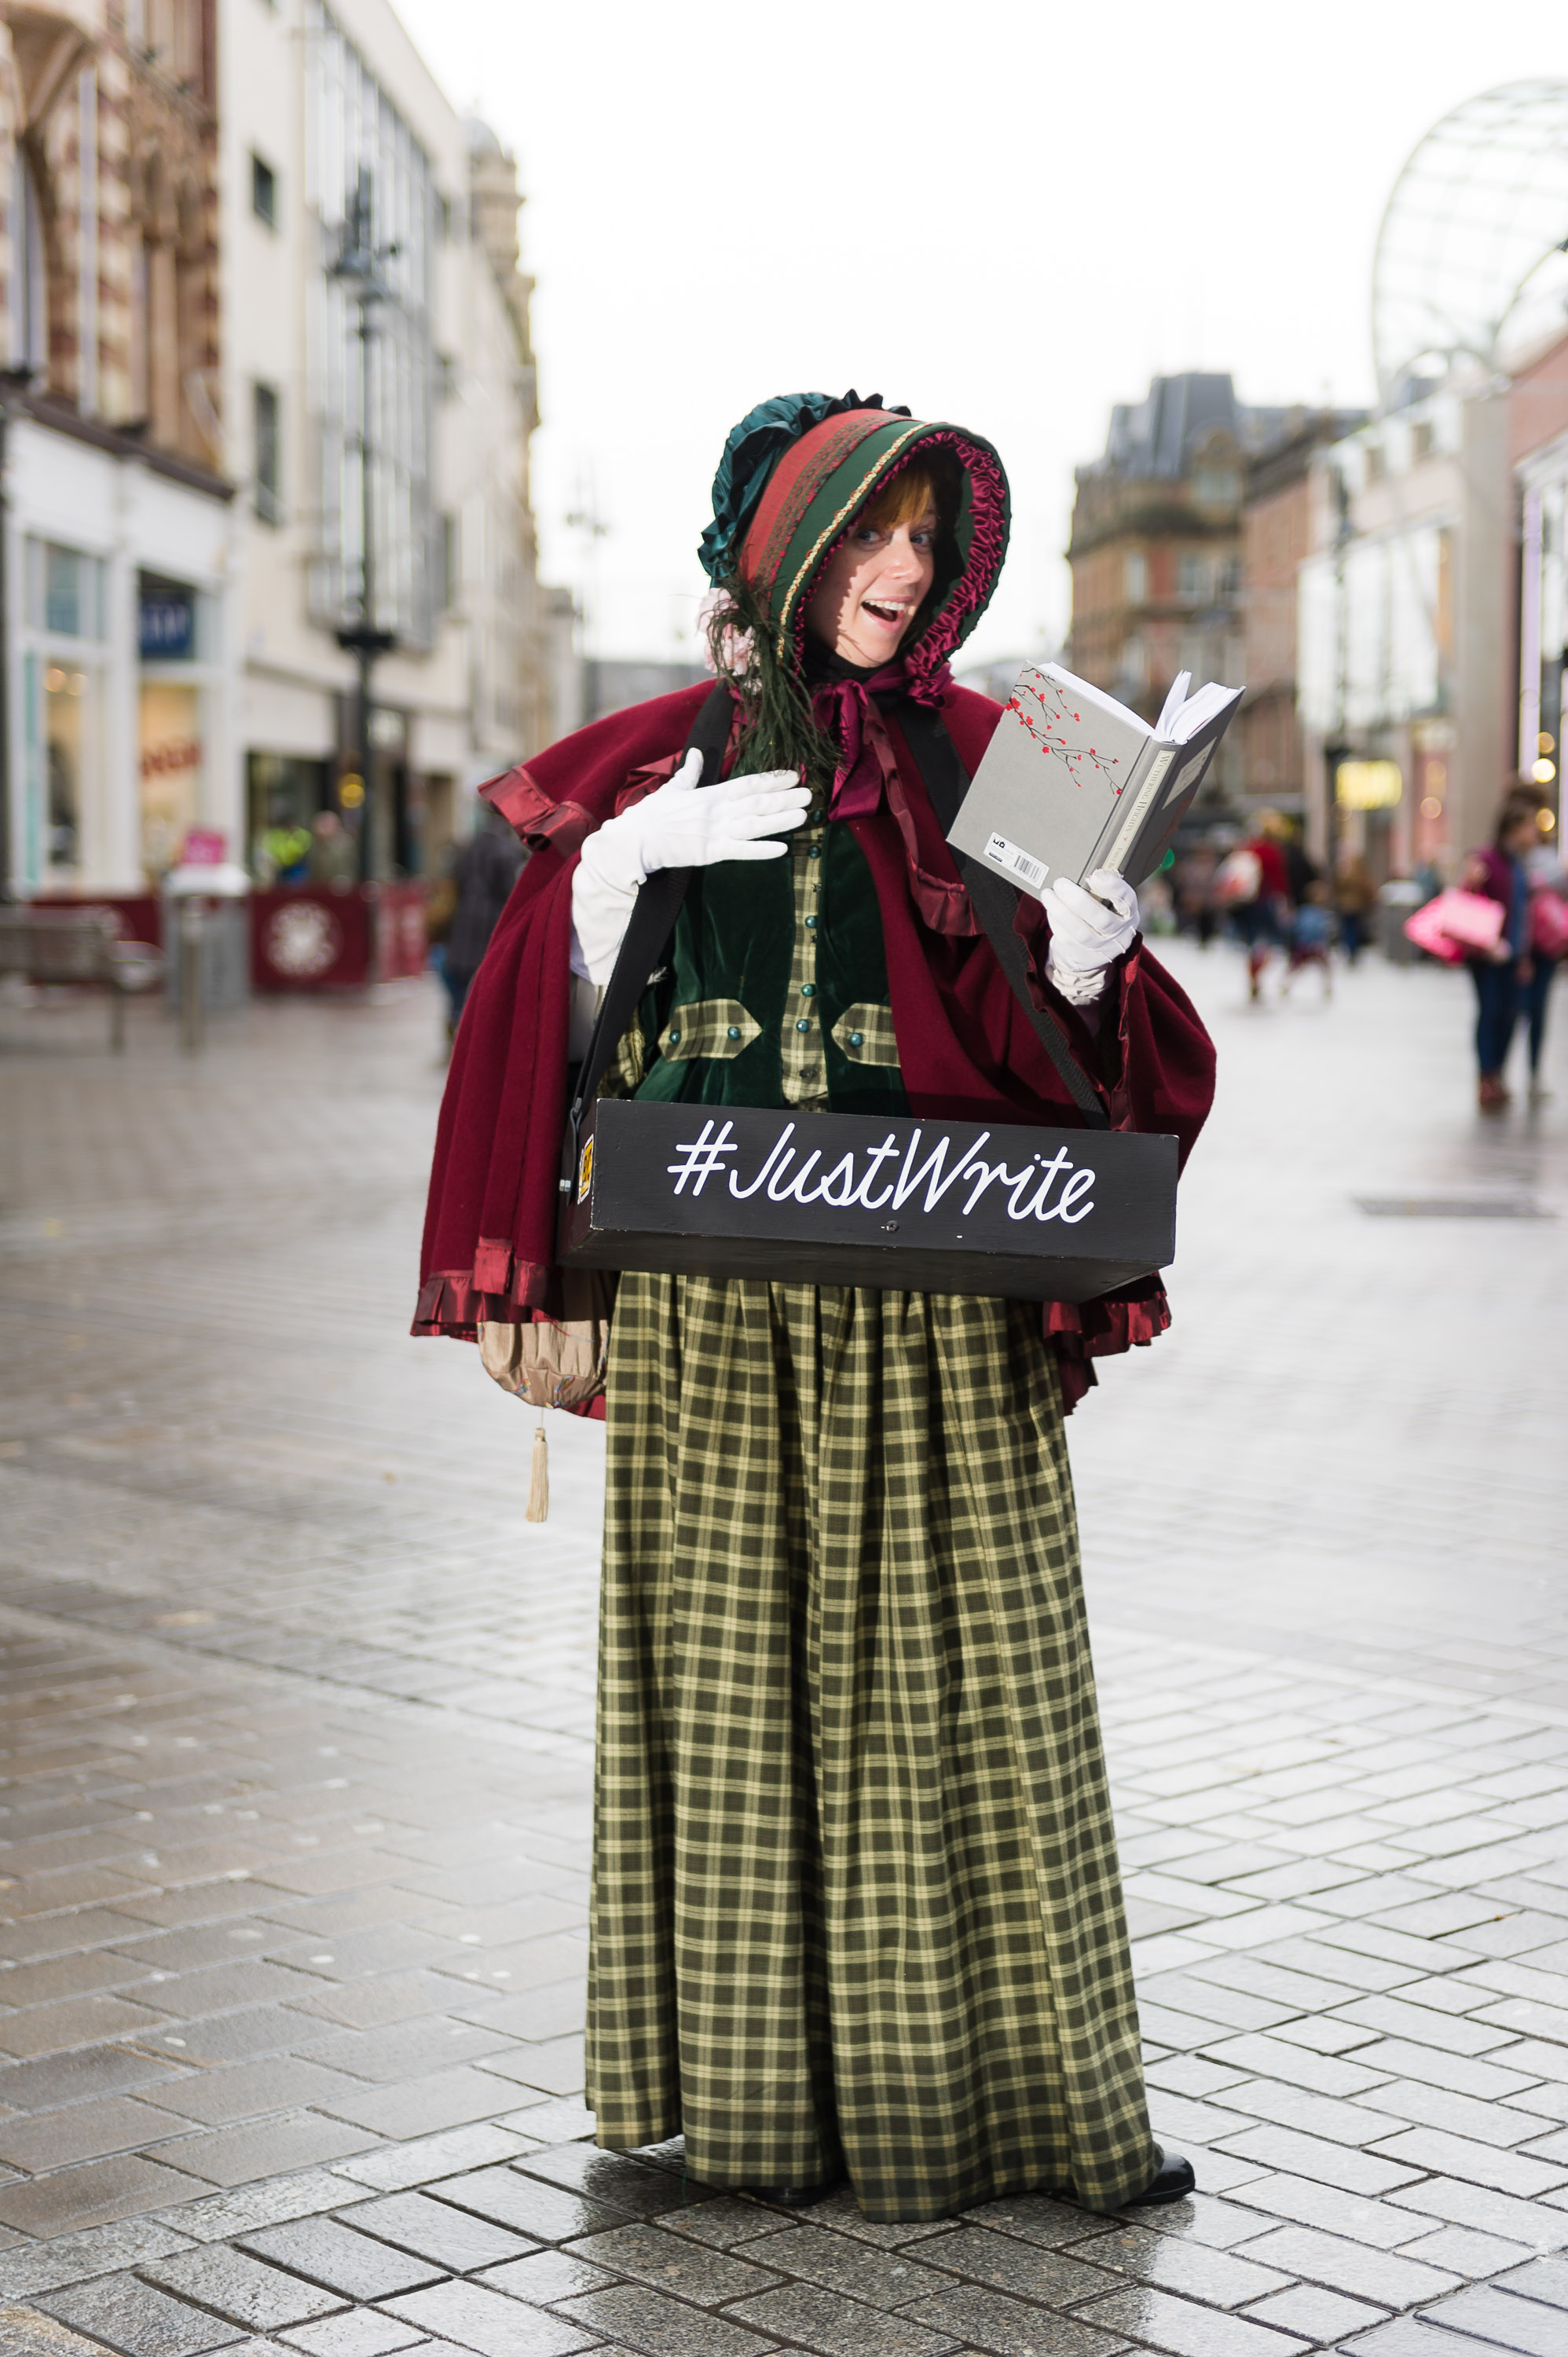 An actor dressed as Emily Bronte on a cobbled street.